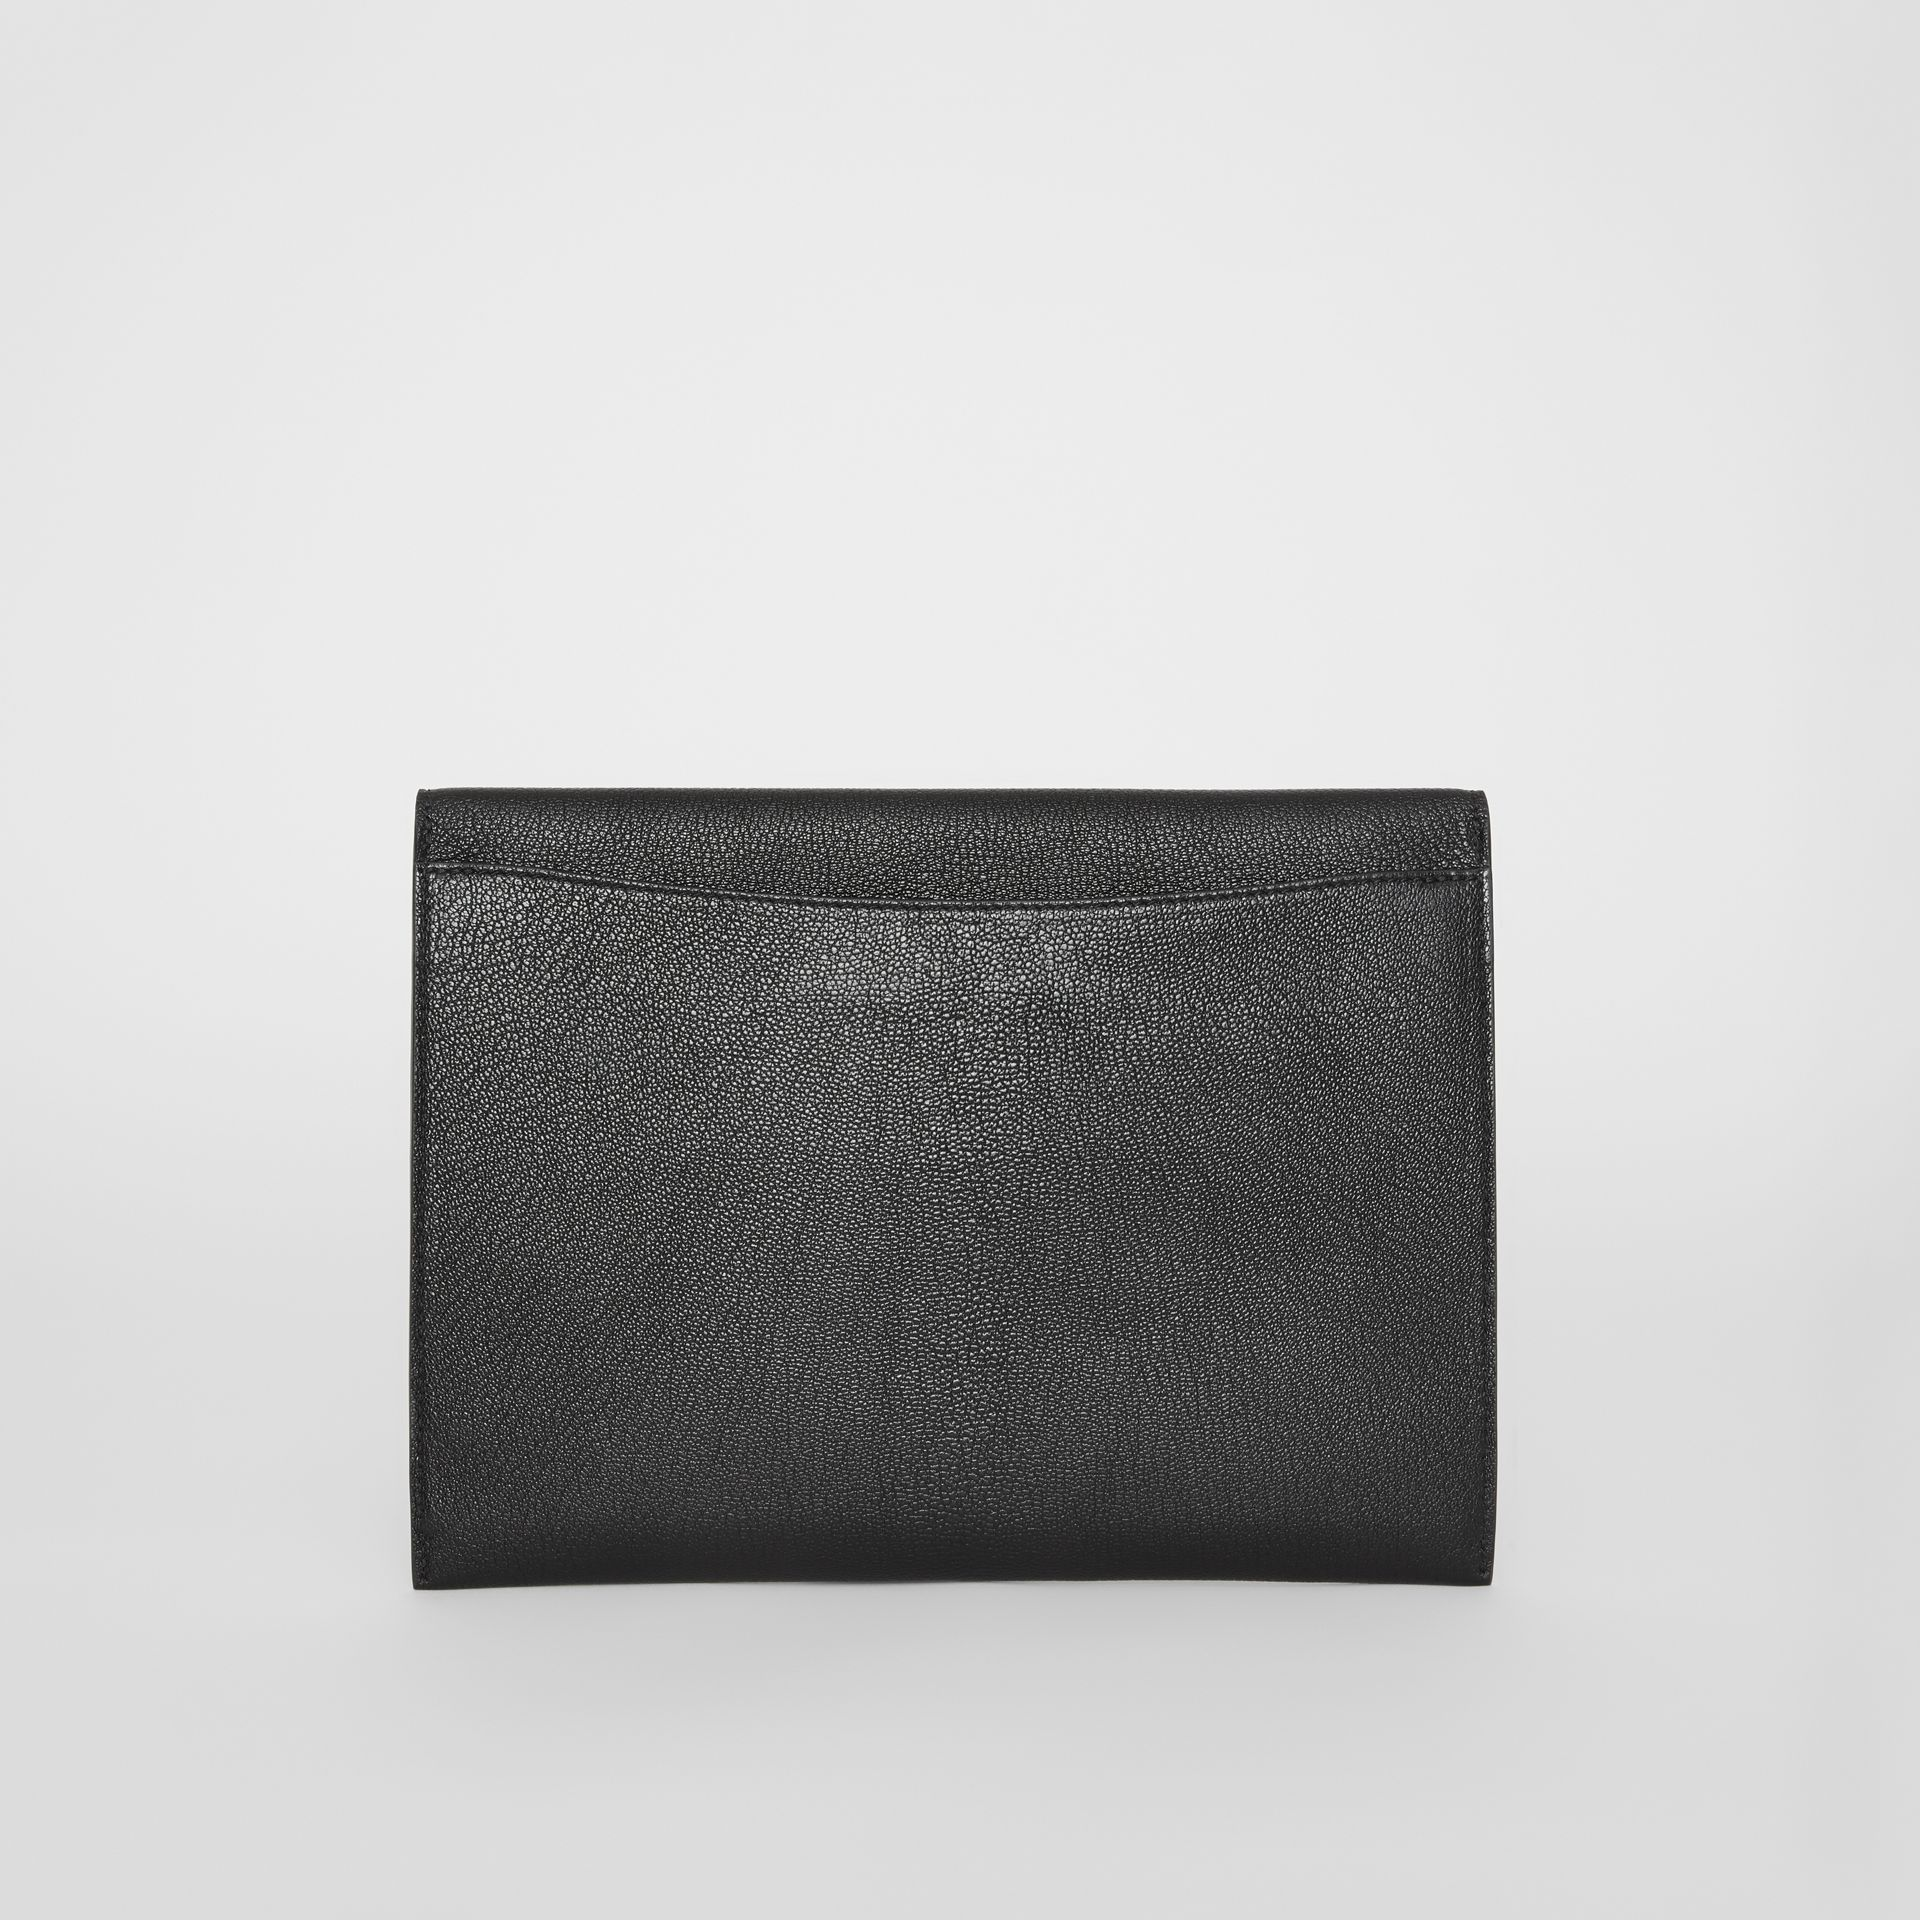 D-ring Leather Pouch in Black - Women | Burberry Australia - gallery image 5